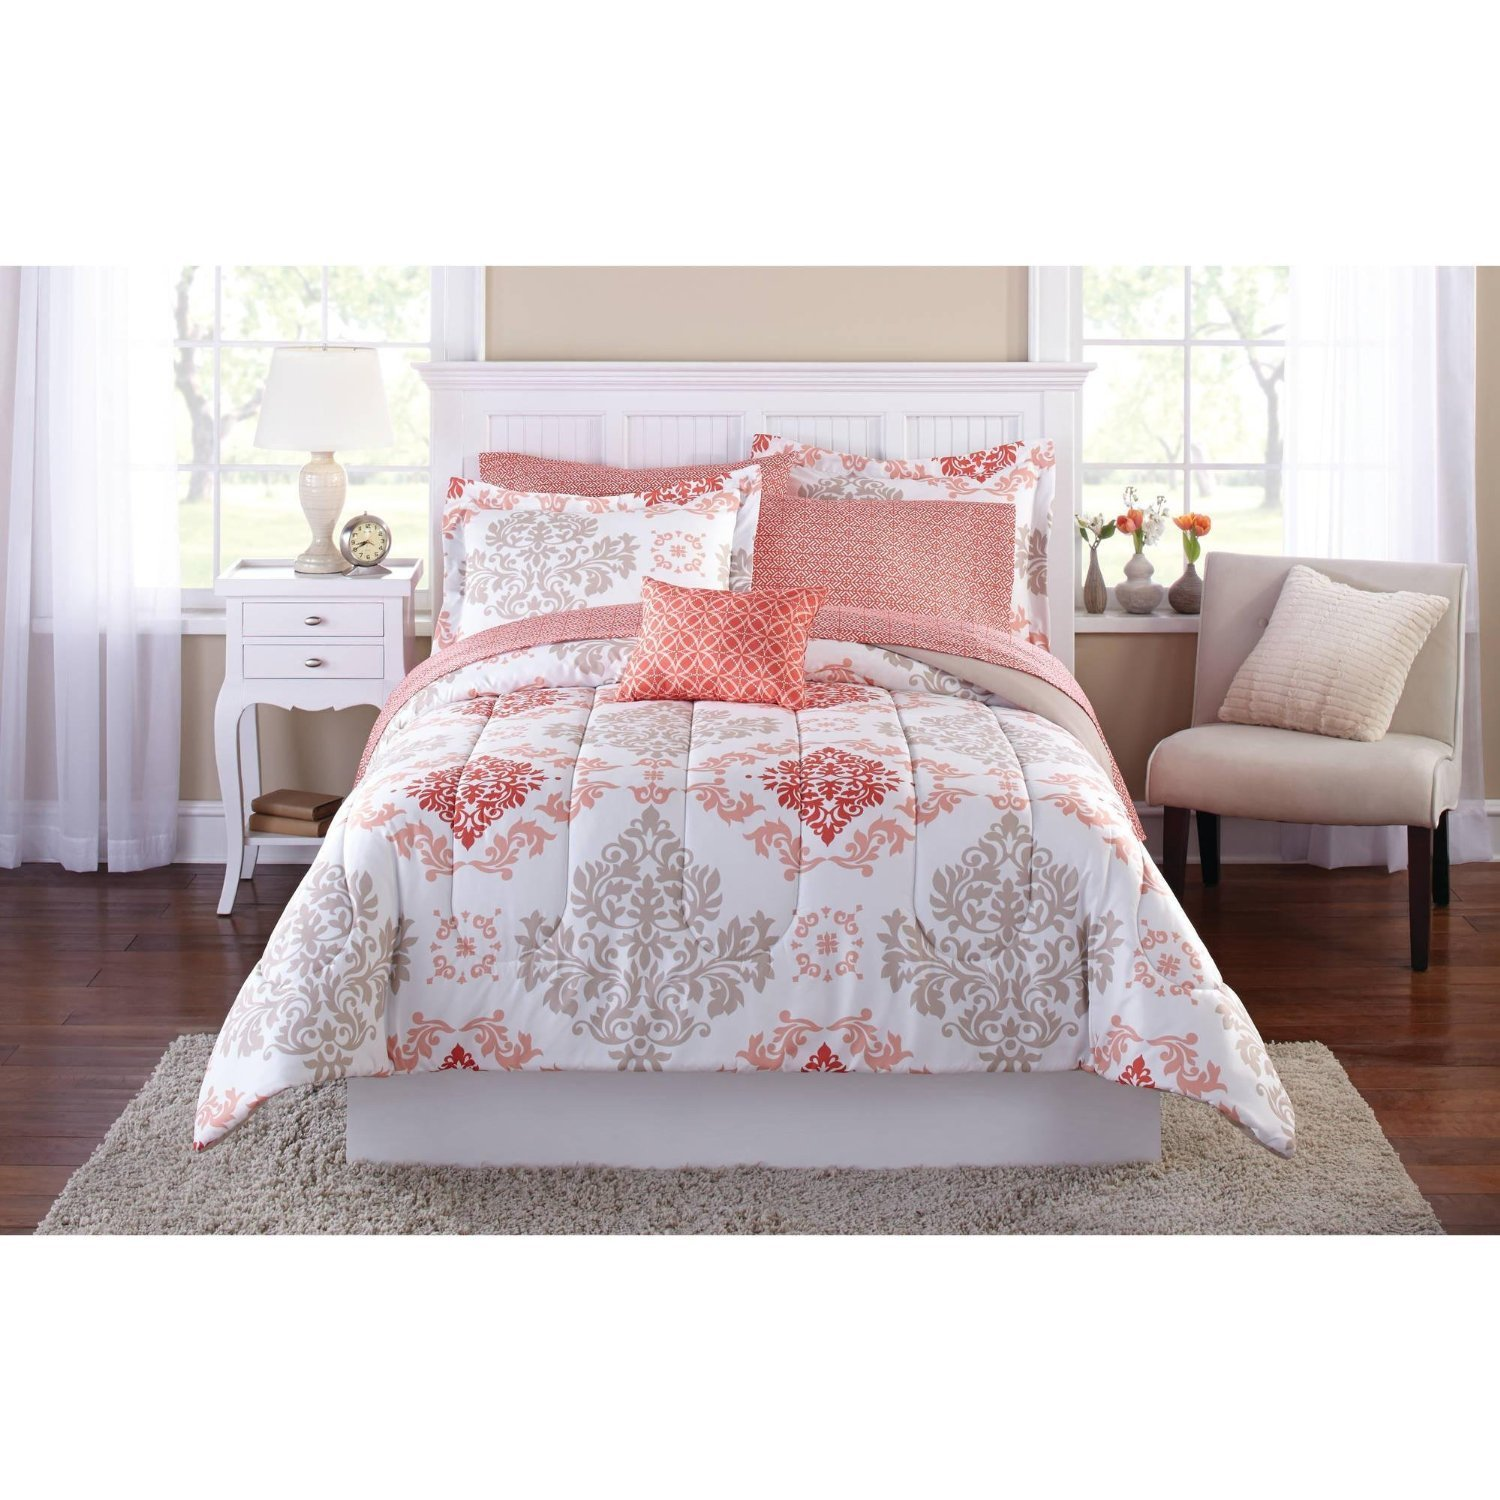 comforter linen outstanding blanket bed dimensions design twin home sheislola xl awesome sheet size com